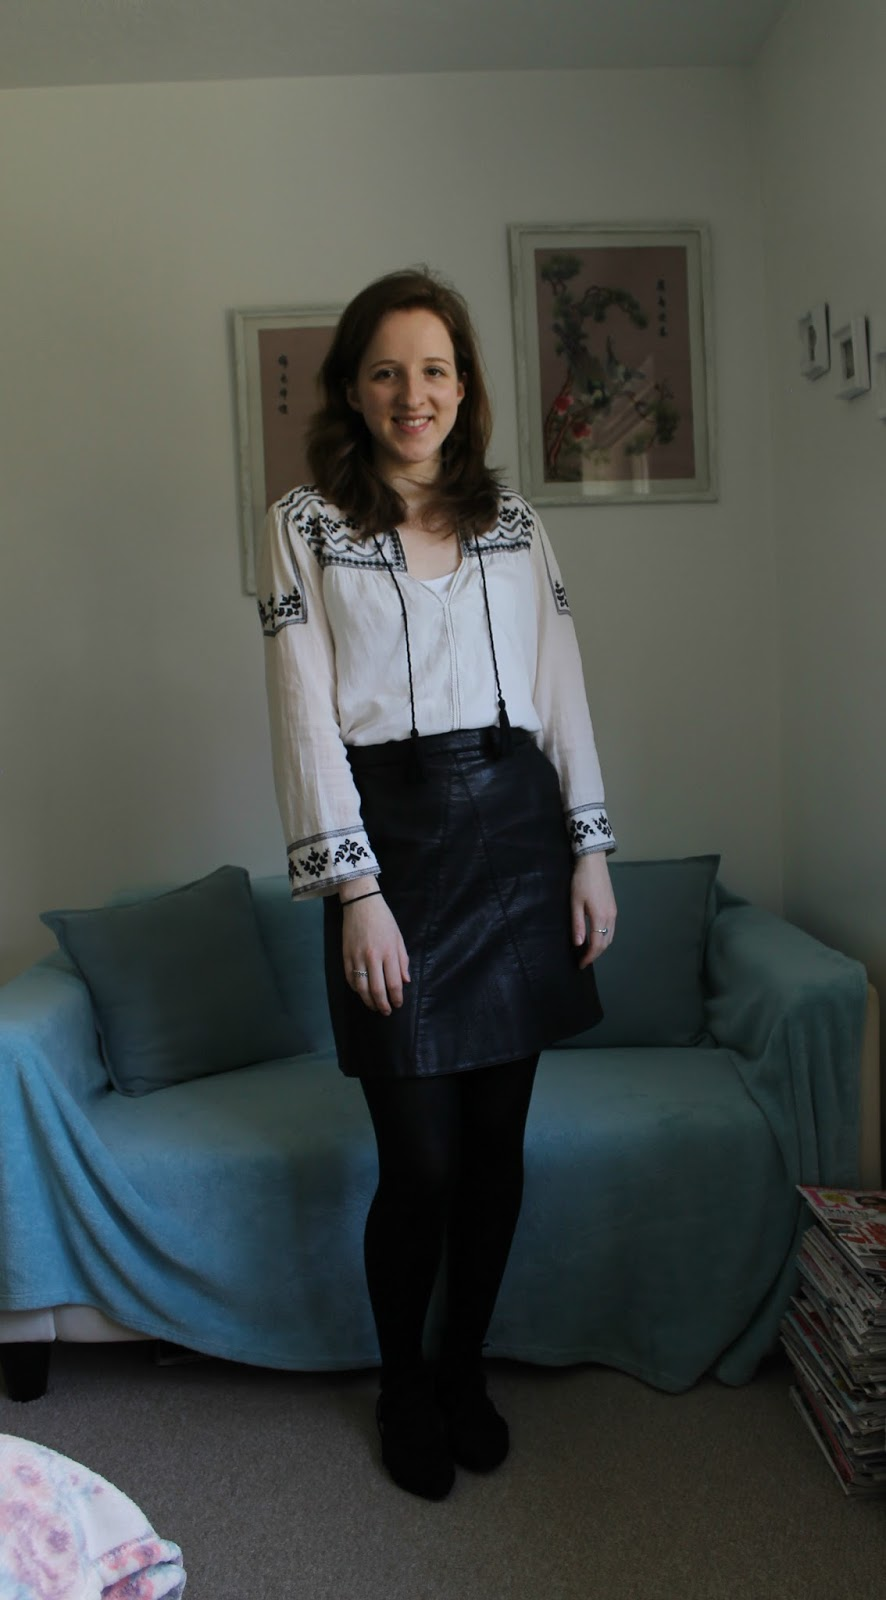 99 Store Near Me >> Everything But The Kitchen Sink: OOTD: Peasant Shirt and Leather Skirt